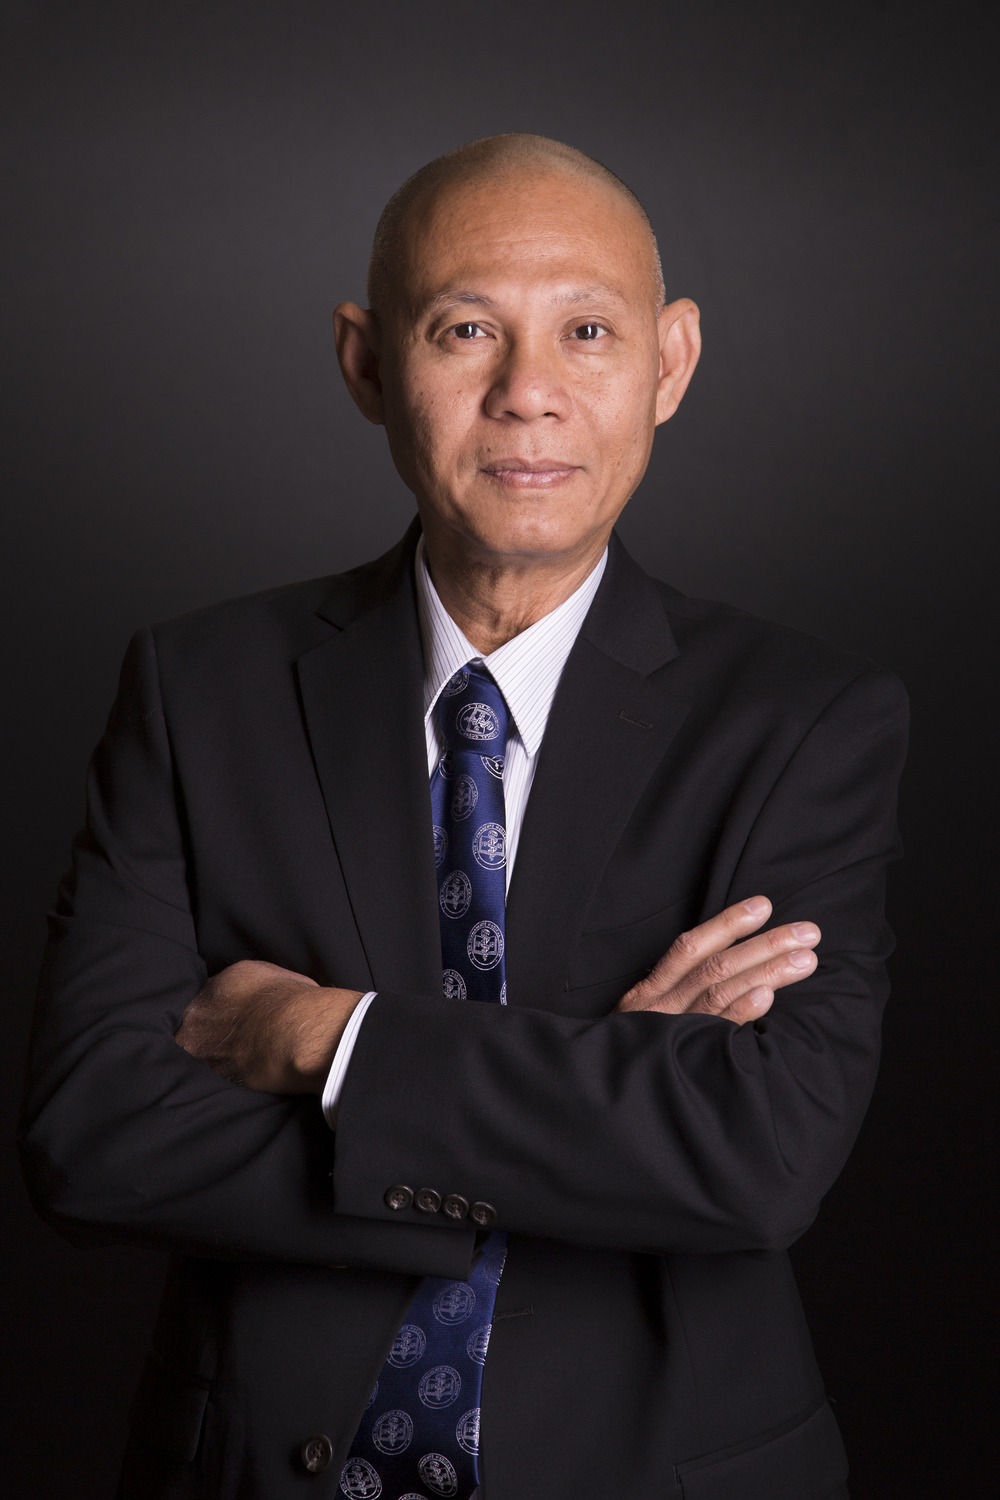 Robert Thaung, PE Senior Engineer